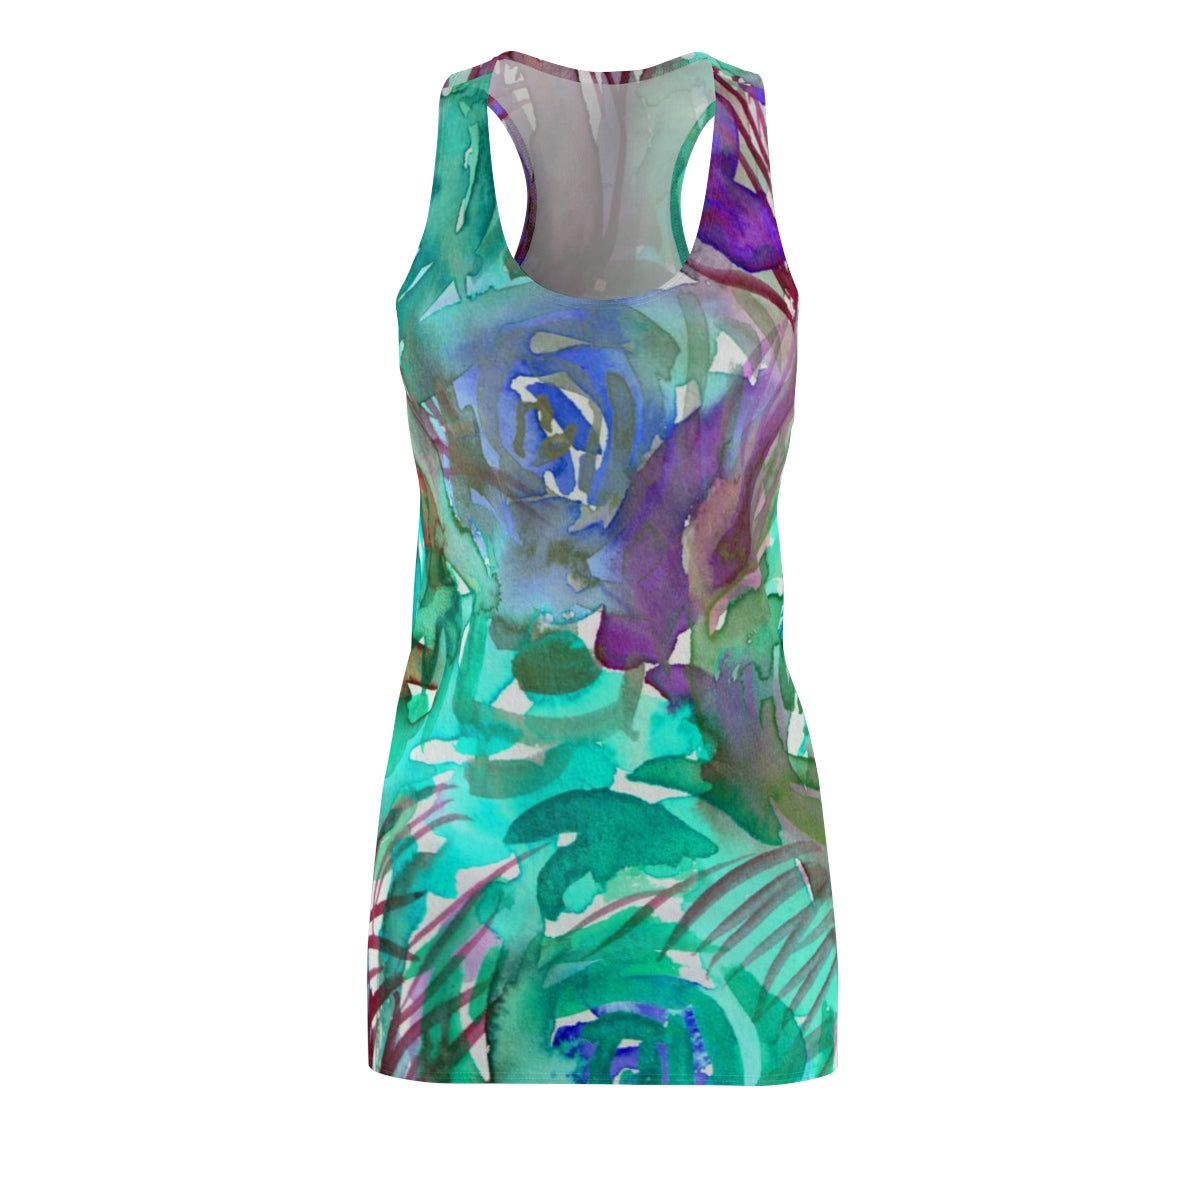 Blue Purple Rose Floral Print Women's Racerback Dress (US Size: XS-2XL) Made in USA-Women's Sleeveless Dress-L-Heidi Kimura Art LLC